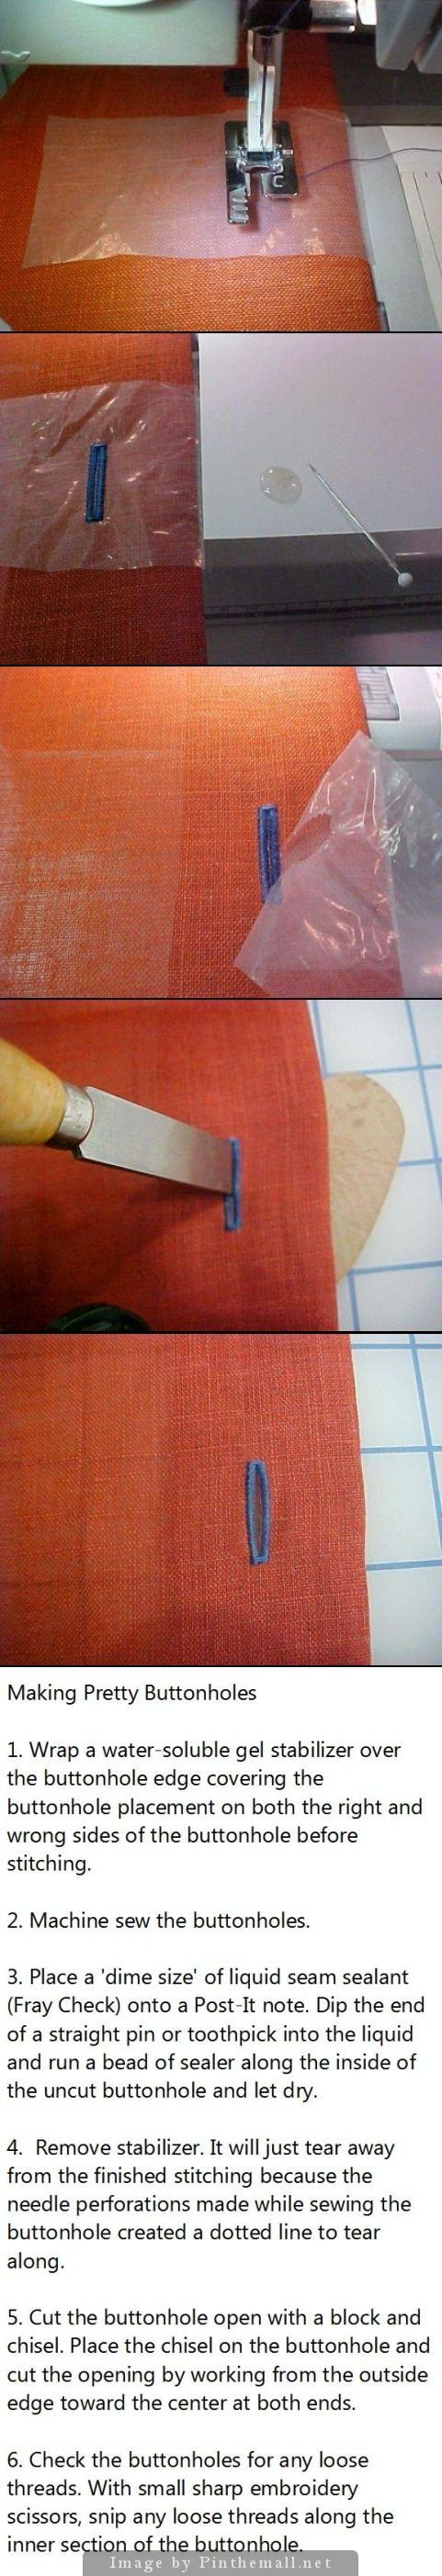 Nothing makes a garment look homemade faster than a poorly sewn and cut buttonhole. Next time you are snoop shopping, check out the buttonholes on different price levels of ready-to-wear garments. Once you learn the secrets to great looking buttonholes, your's will be better than the designer garments.